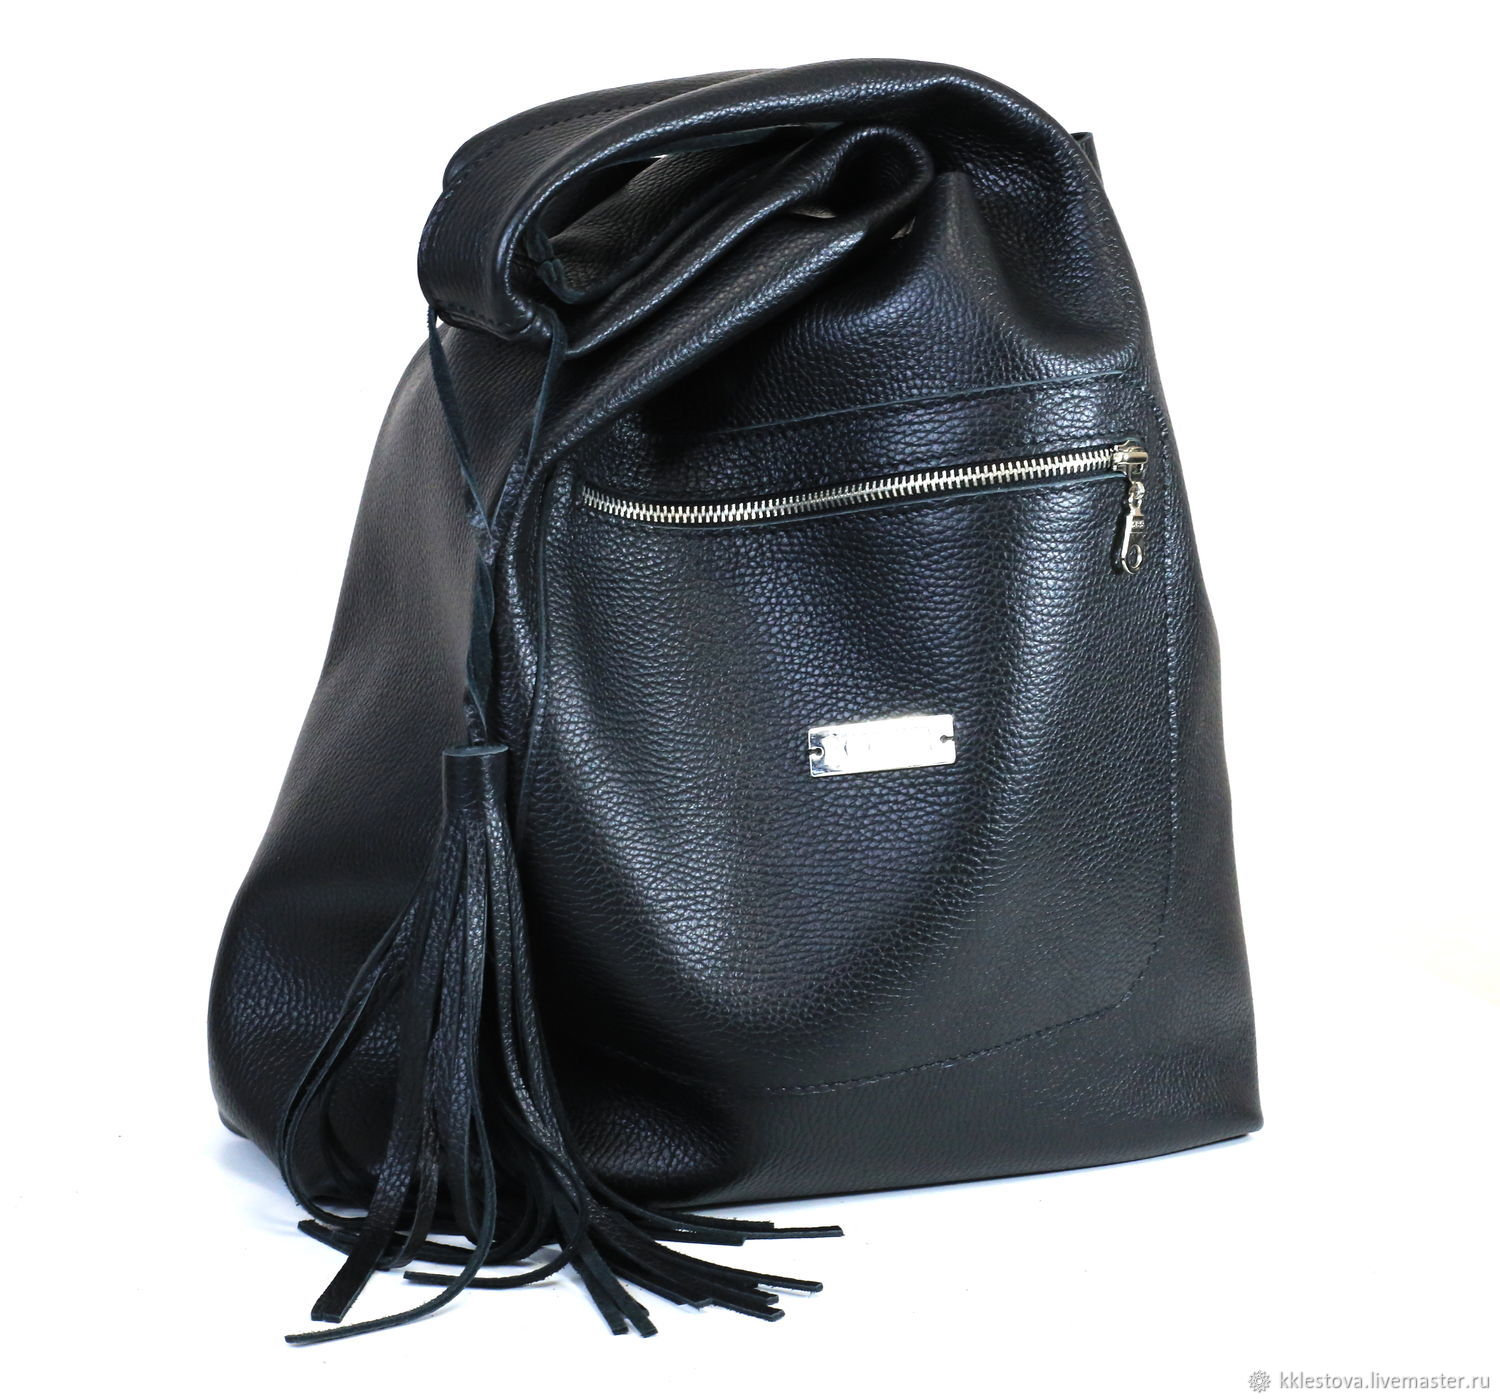 Bag - Bag Pack - medium size with two pockets, Sacks, Moscow,  Фото №1